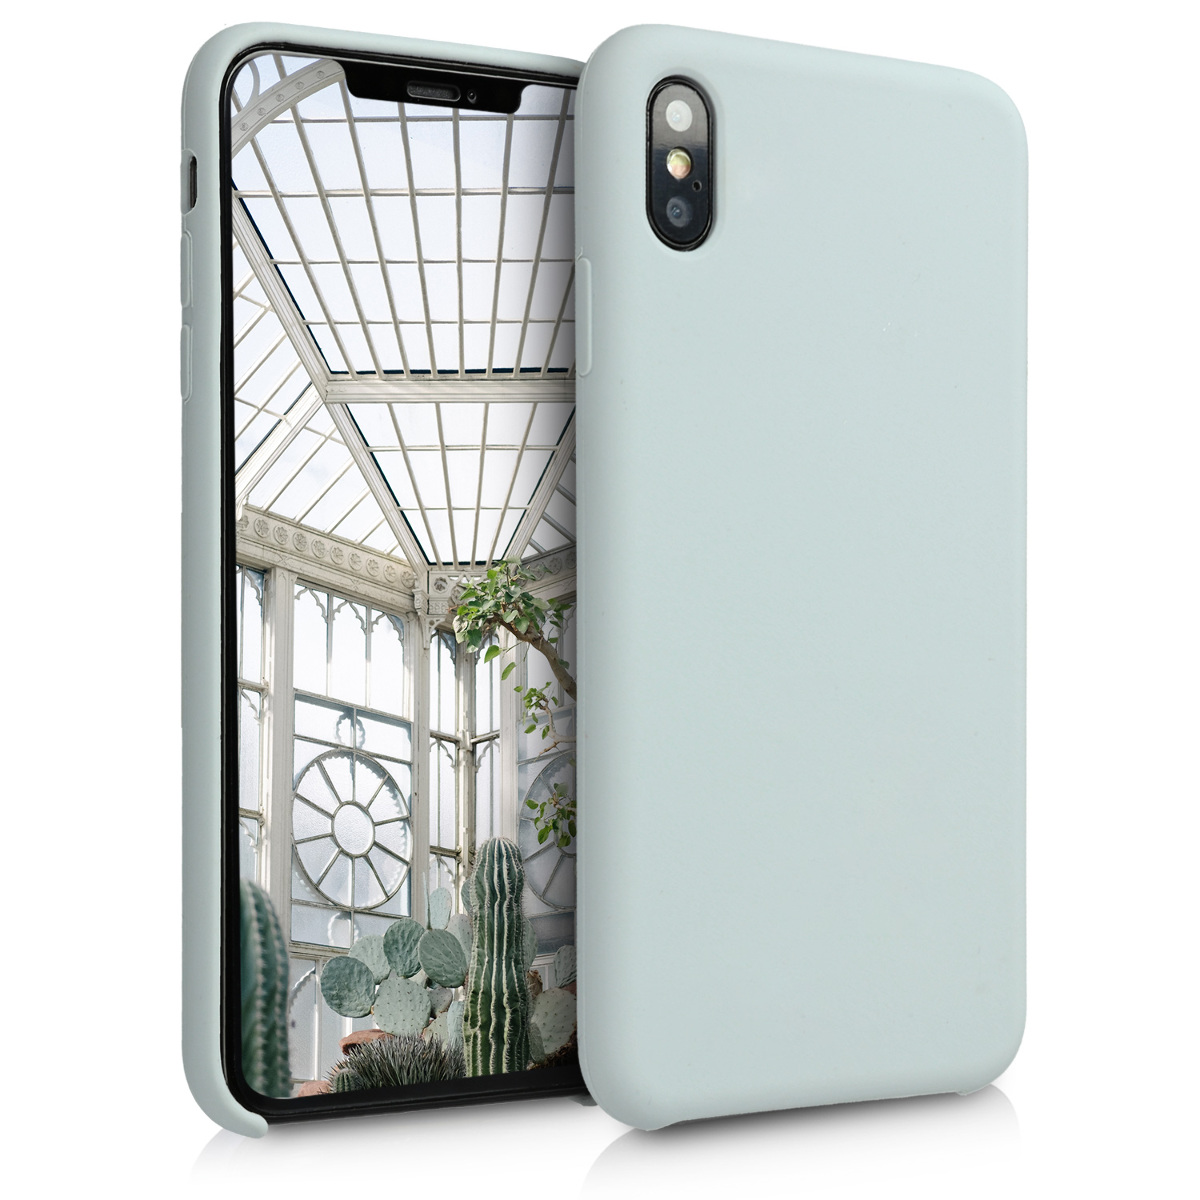 KW TPU Θήκη Σιλικόνης Apple iPhone XS Max - Soft Flexible Rubber Protective Cover - Light Grey Matte (45909.70)